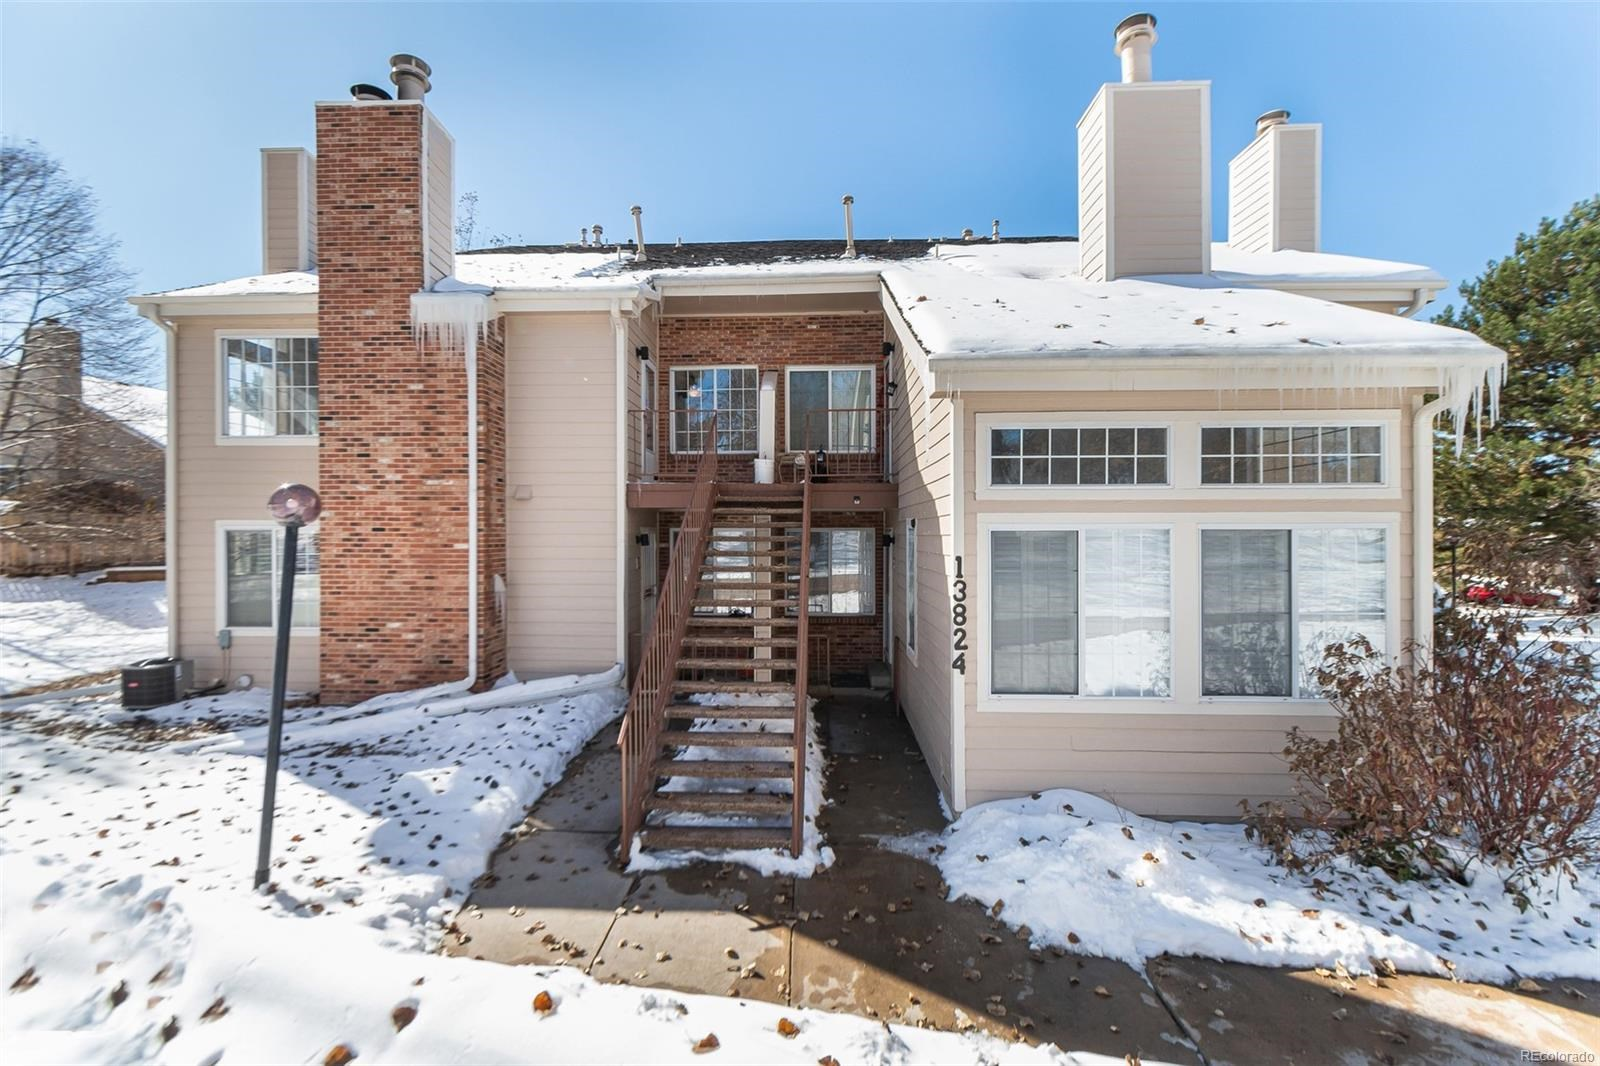 MLS# 8831189 - 1 - 13824 E Lehigh Avenue #F, Aurora, CO 80014